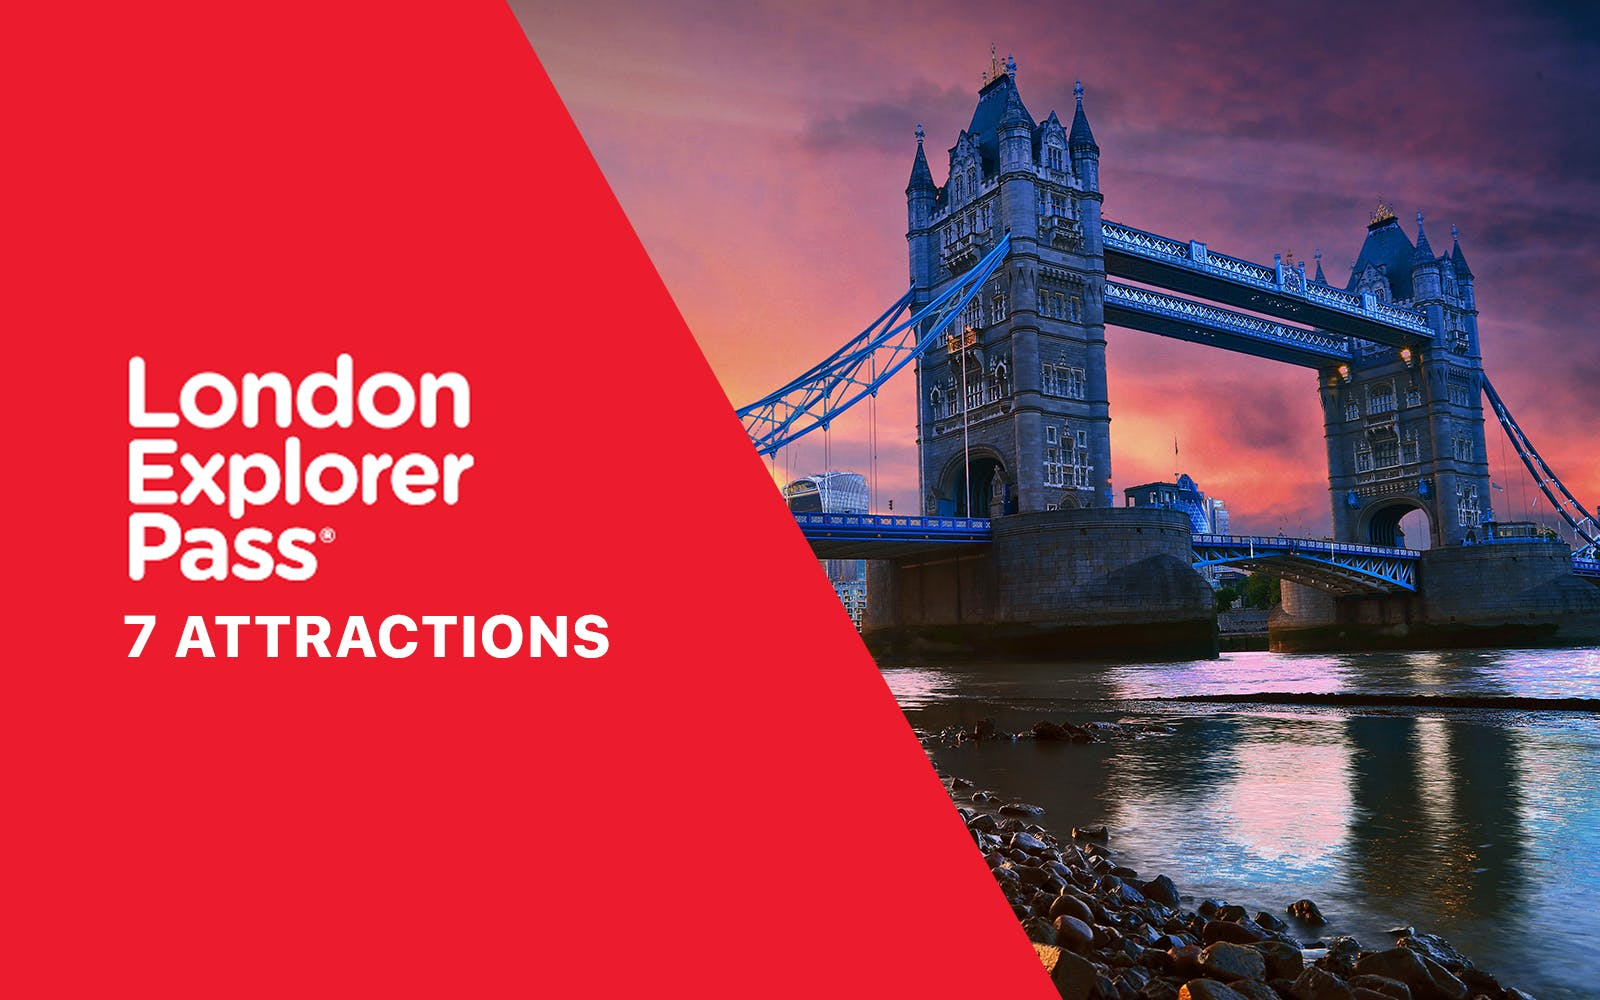 7 attraction london explorer pass-1